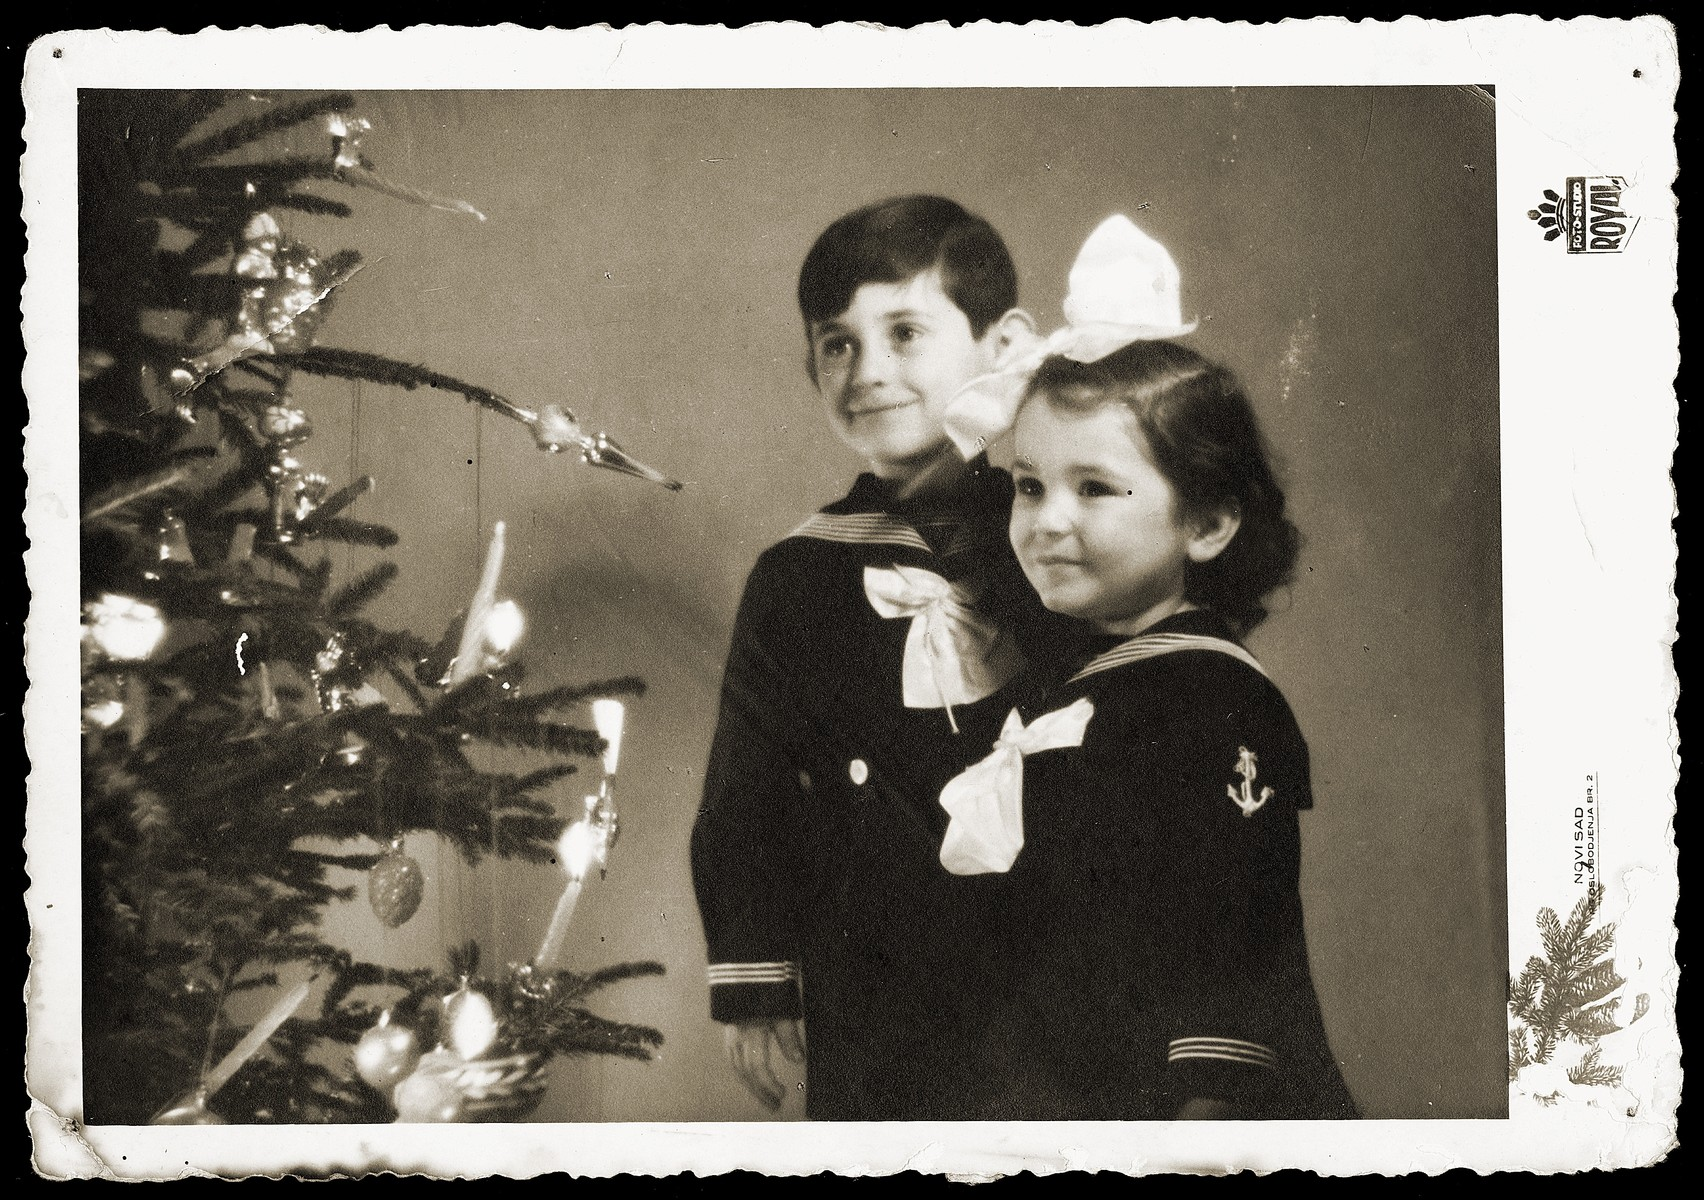 Gavra and Irena Mandil pose next to a Christmas tree.  Mosa (Moshe) Mandil often used his children as models to advertise his photo studio.    This photograph, which he took in the fall of 1940 to promote business for the upcoming Christmas season, later saved the lives of his family.  During their escape from Serbia by train in April 1941, the Mandils were stopped by German SS, who demanded to see their papers.  When the Germans accused them of being Jews, Mosa showed them this photo, and the family was left alone.